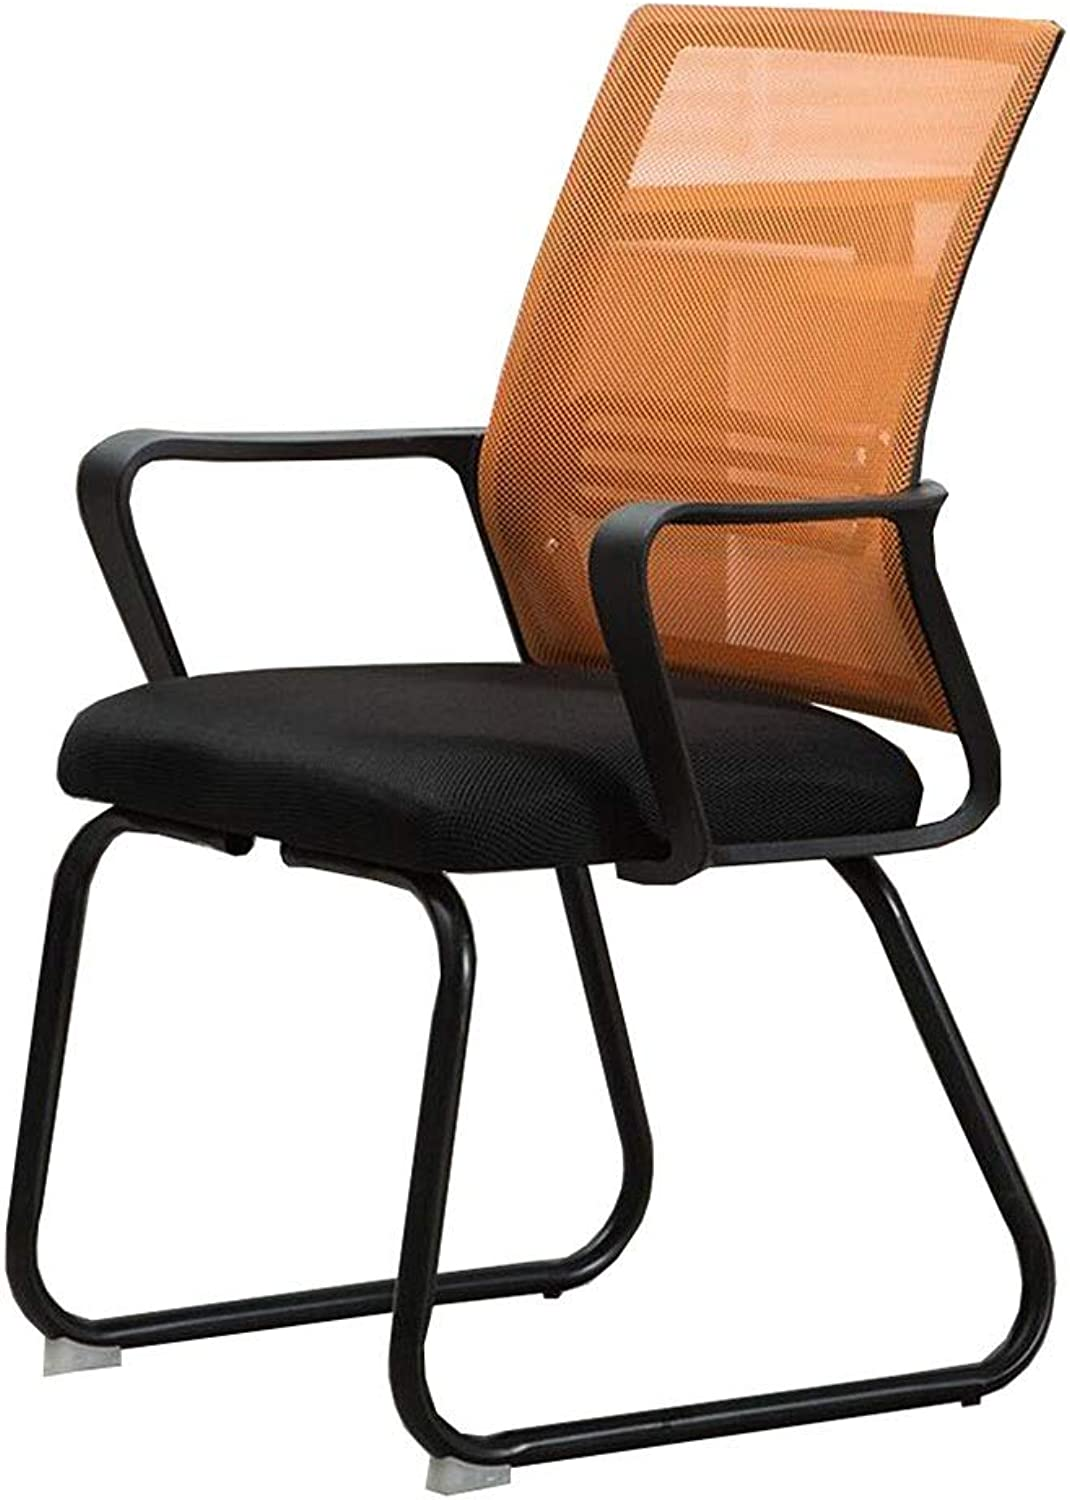 Dall Office Chair Ergonomic Bow-Shape Mesh Desk Chair Lumbar Support Steel Frame Staff Chair 42×53×90cm (color   orange, Size   Black Frame)